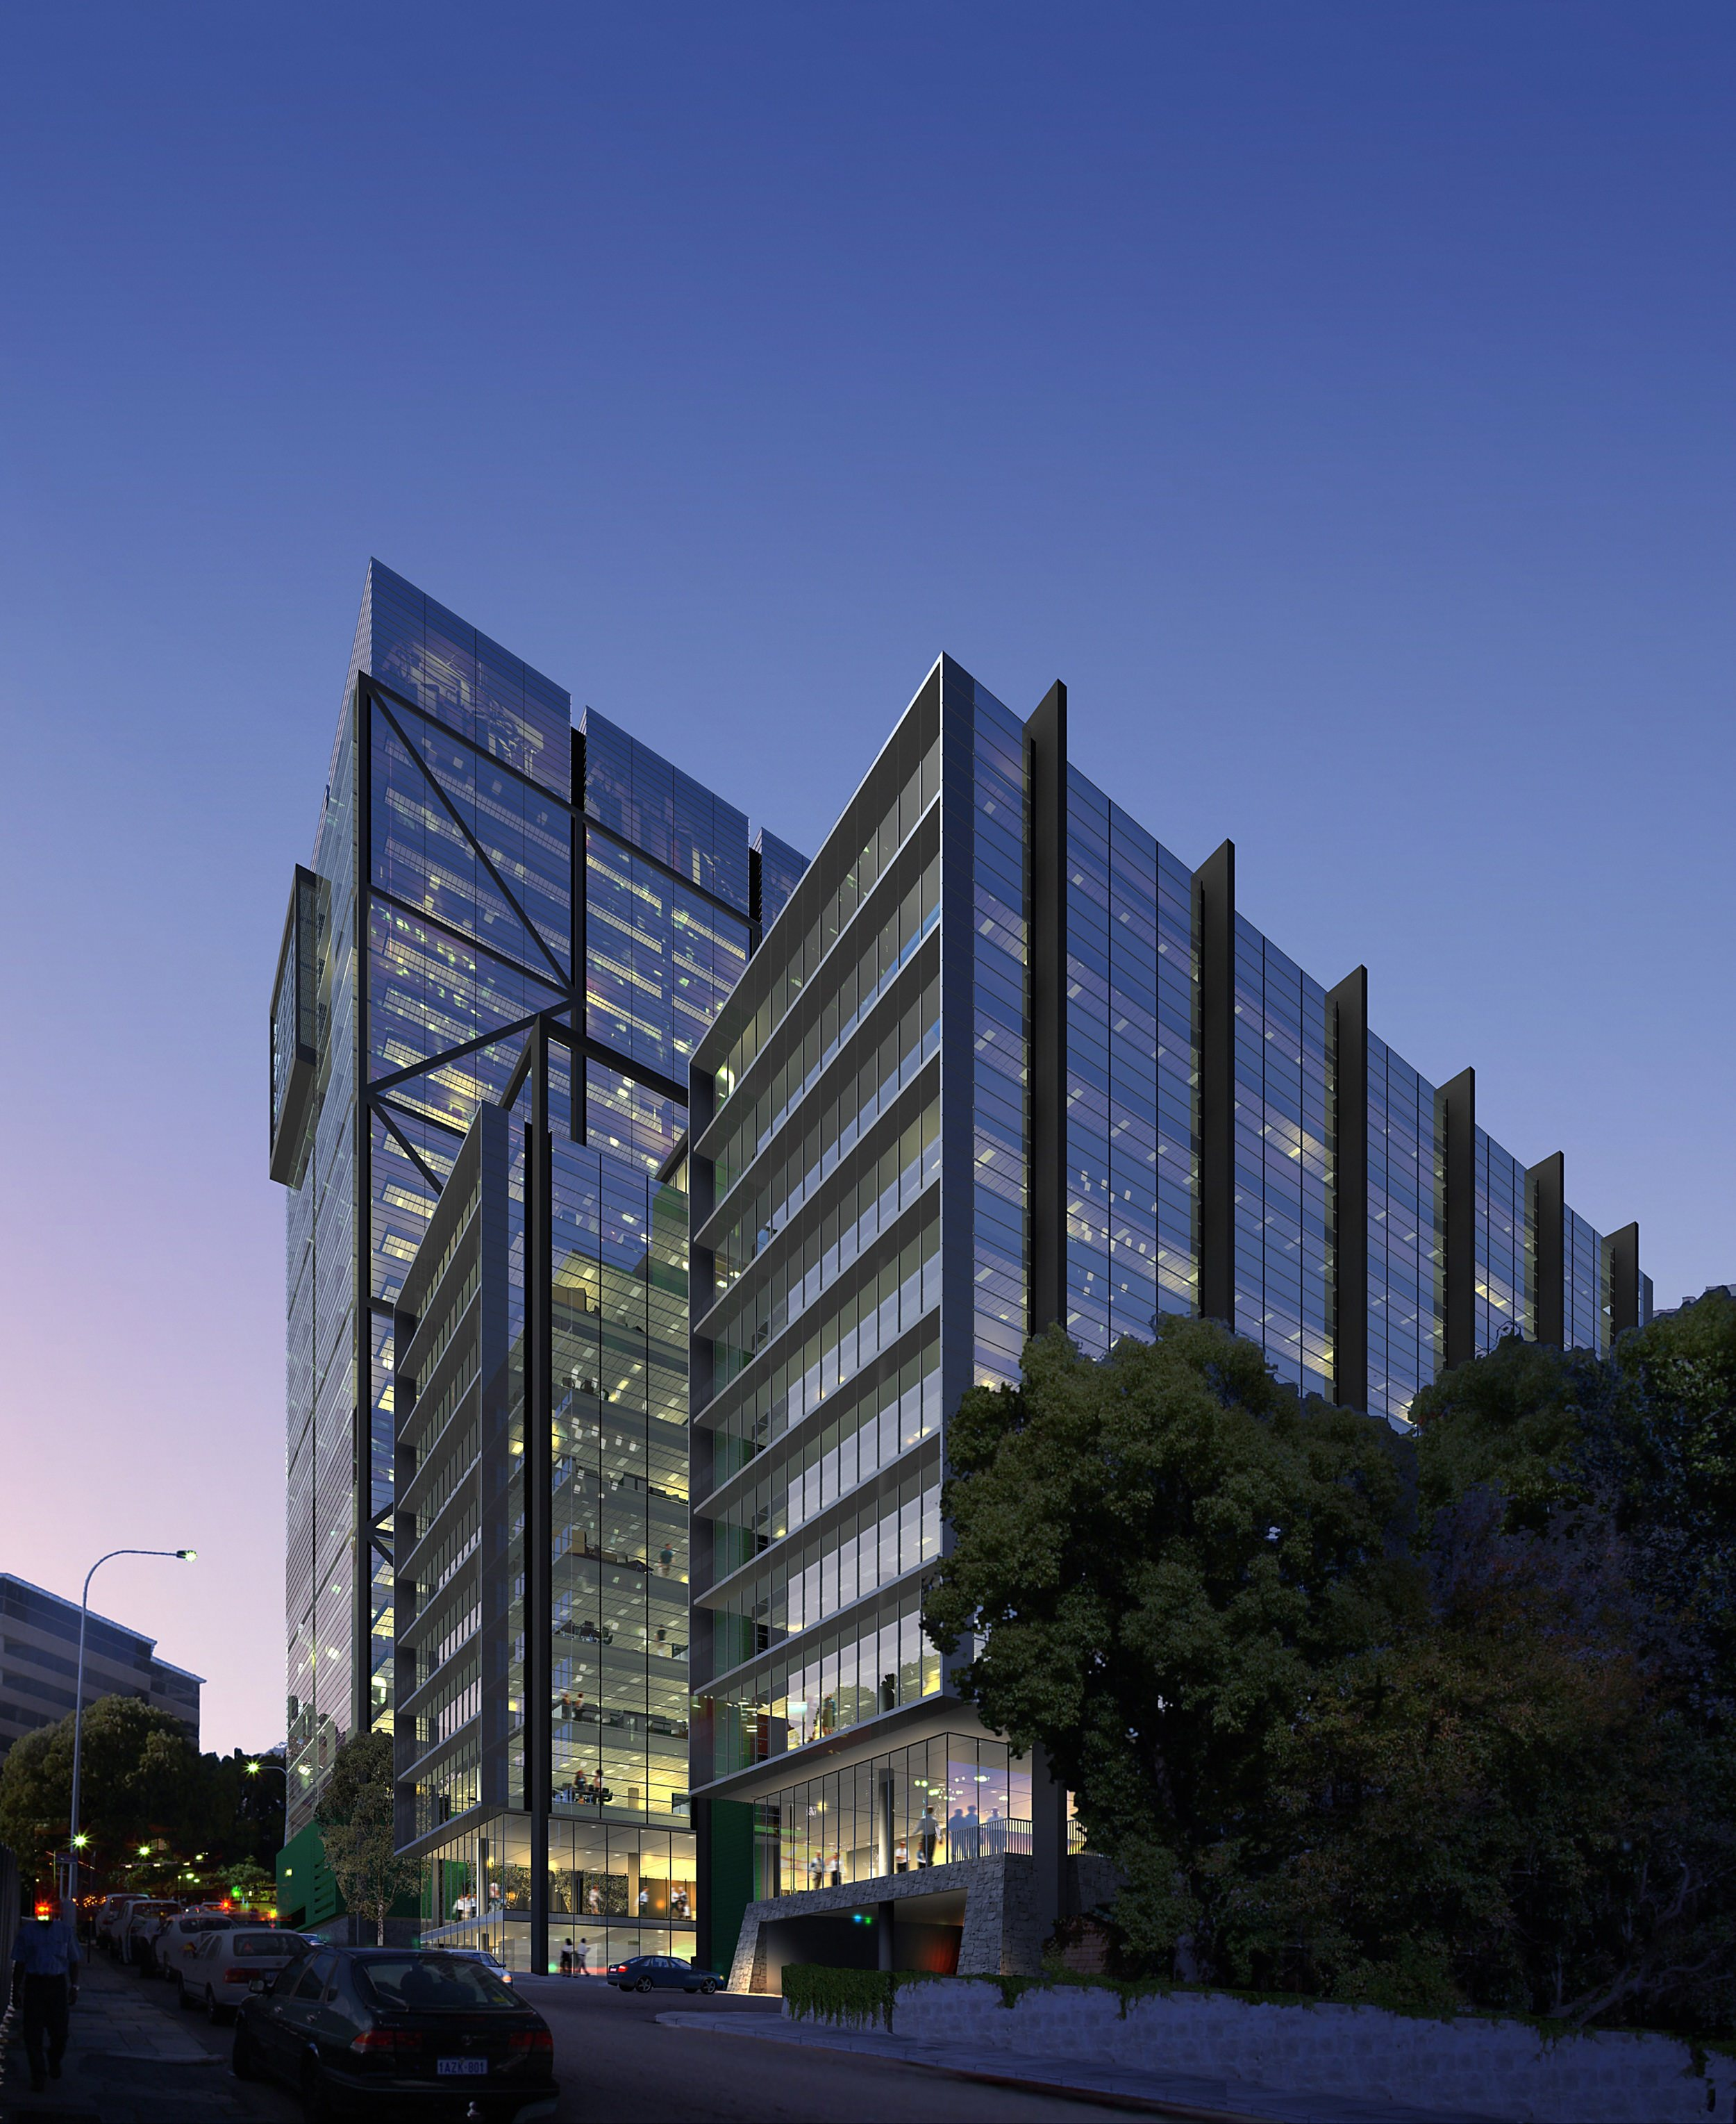 A large glass office building that has many glass panels and some trees that are at the base of it.